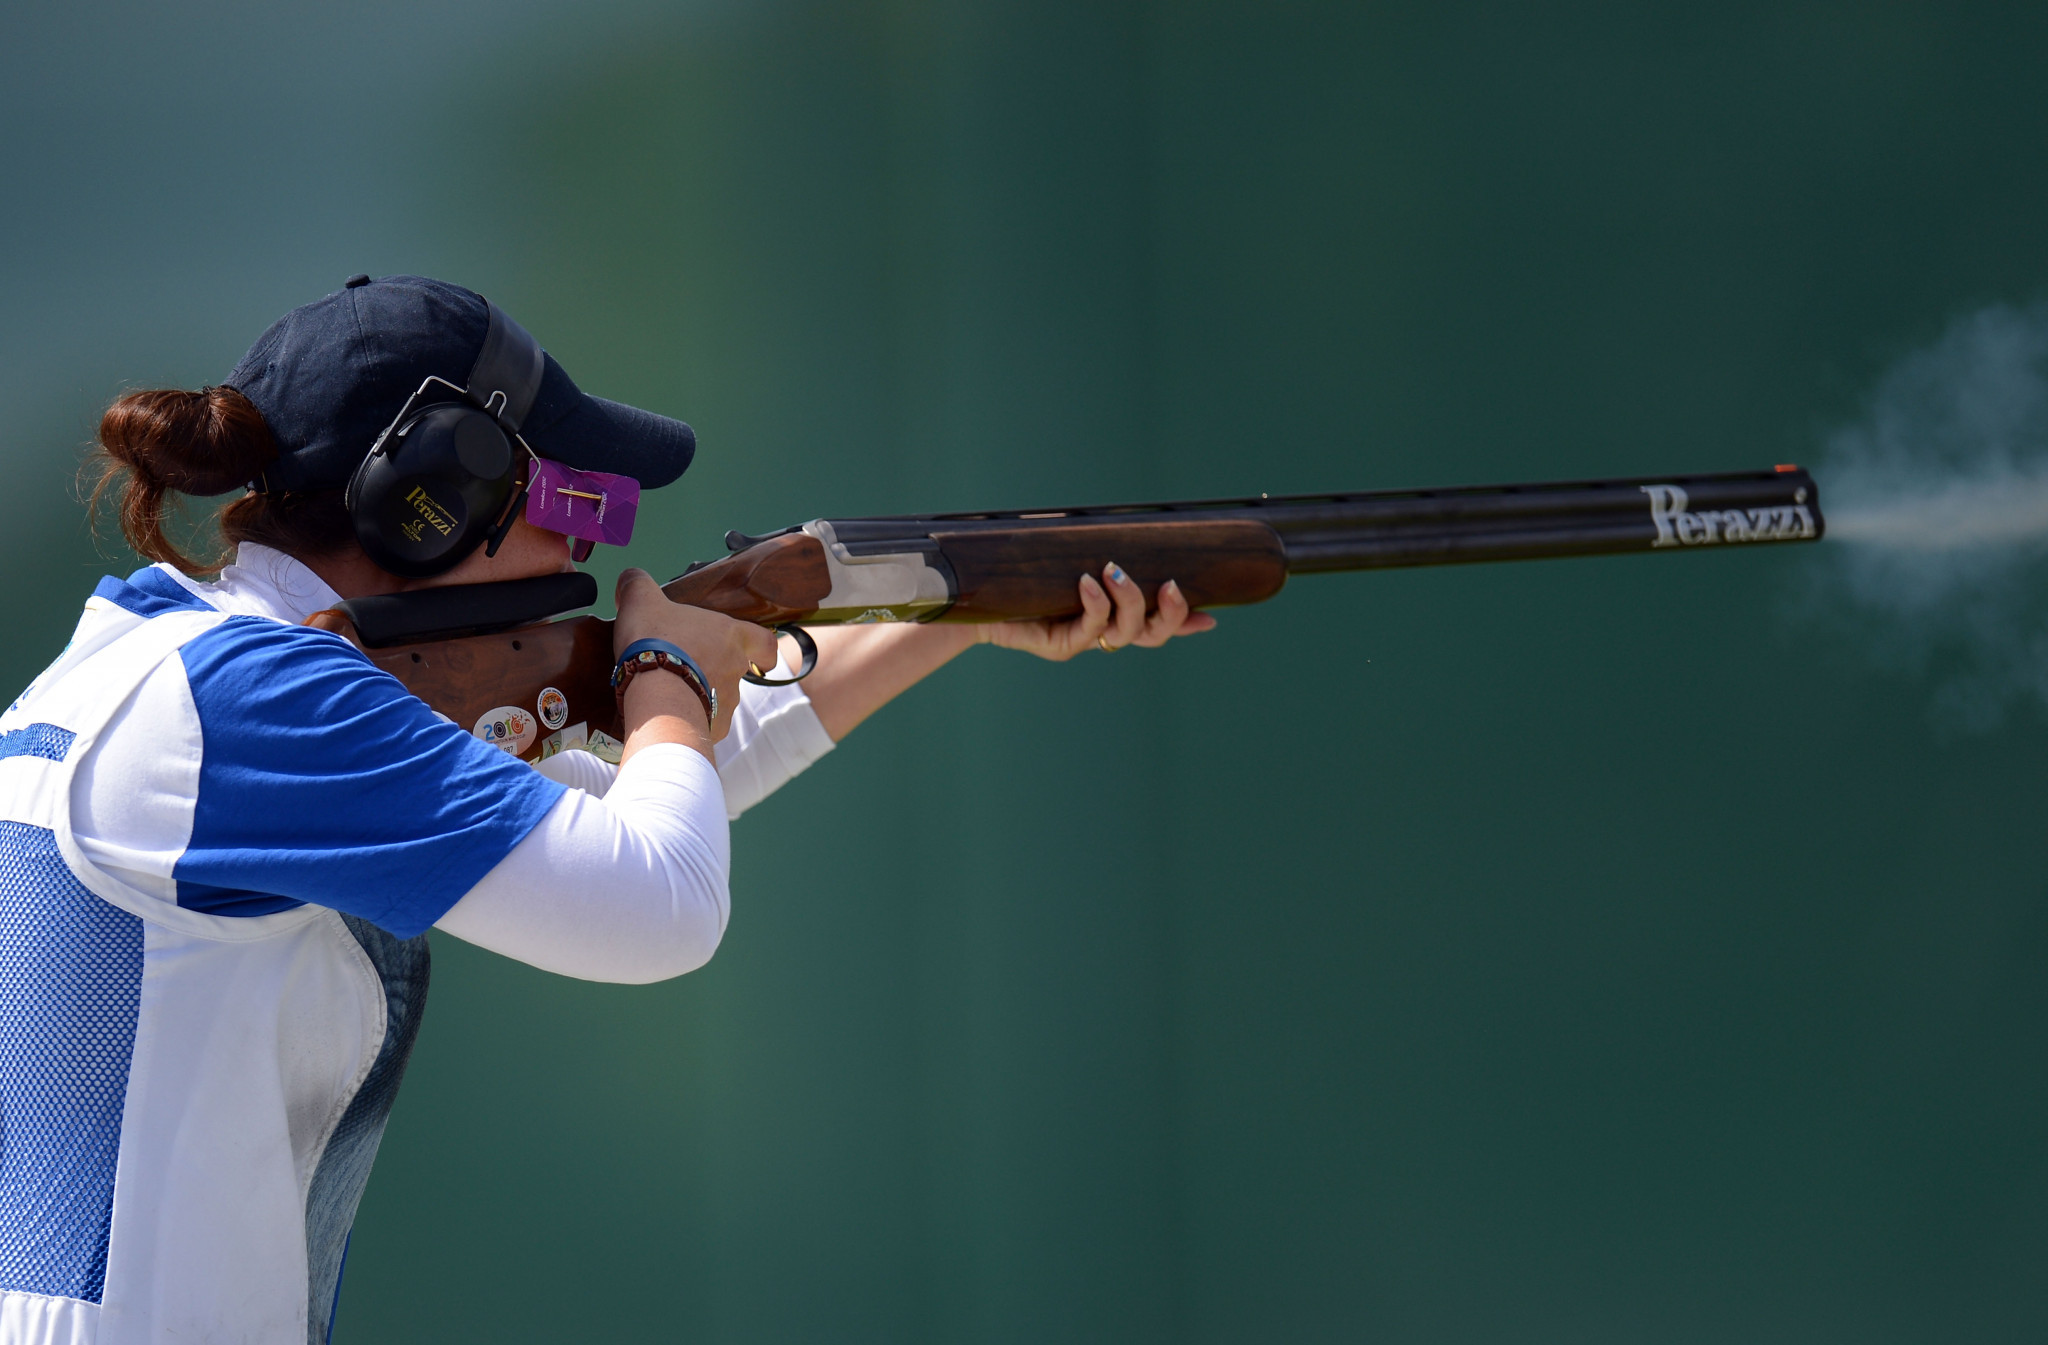 Alessandra Perilli was the silver medallist in the women's trap event ©Getty Images